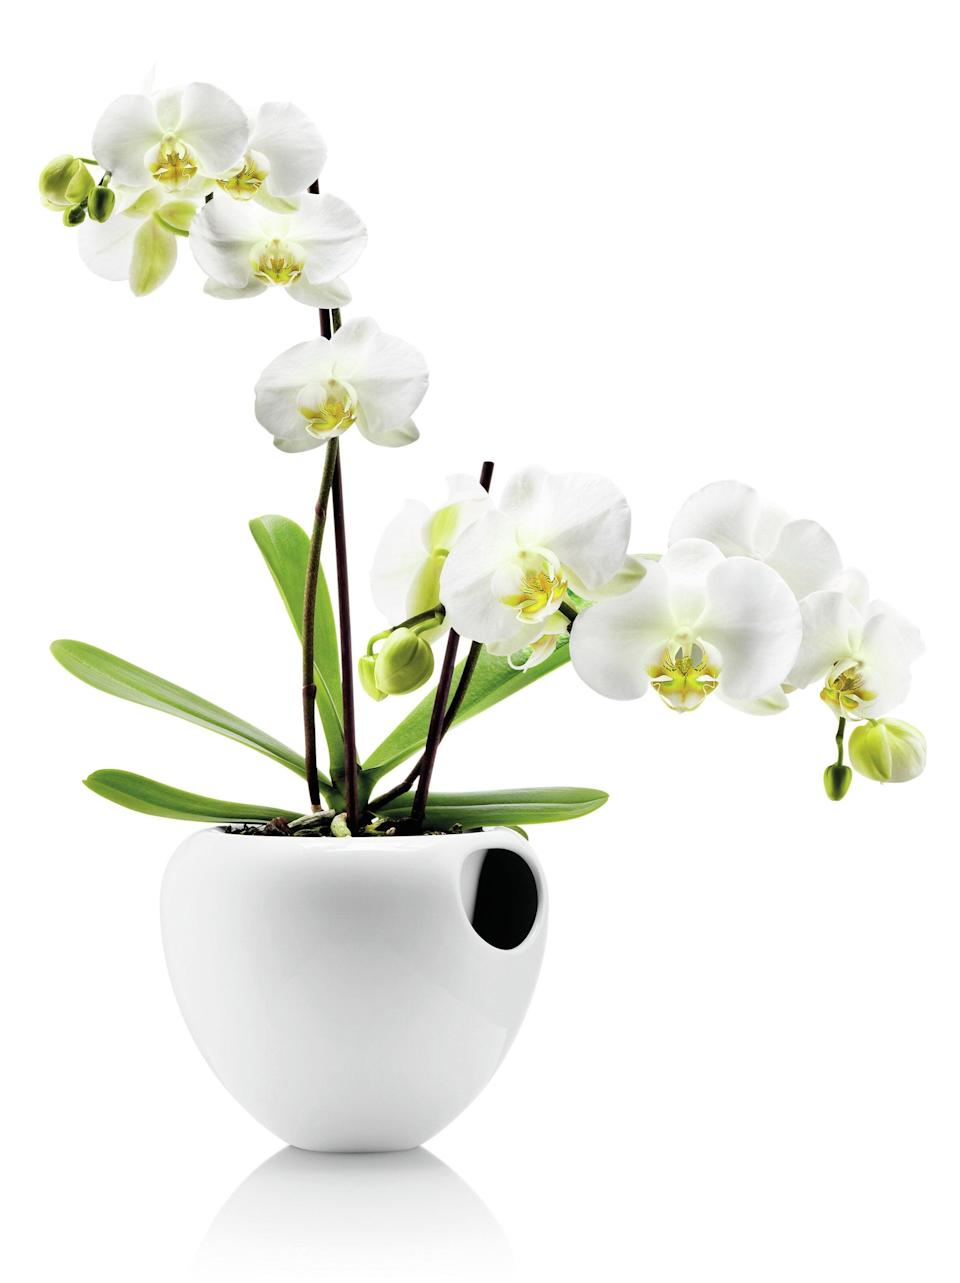 """<br><h2>Ivy Bronx Preusser Self-Watering Composite Pot Planter</h2><br><strong>Best For: Orchids</strong><br>So it's not the most functional pot ever made and not perfect for all plants, but we still recommend it for its sleek glassy exterior and luxe design. Pop an orchid inside for a nice bougie touch to your living space. <br><br><em>Shop</em> <strong><em><a href=""""https://www.wayfair.com/brand/bnd/ivy-bronx-b44318.html"""" rel=""""nofollow noopener"""" target=""""_blank"""" data-ylk=""""slk:Ivy Bronx"""" class=""""link rapid-noclick-resp"""">Ivy Bronx</a></em></strong><br><br><strong>Ivy Bronx</strong> Preusser Self-Watering Composite Pot Planter, $, available at <a href=""""https://go.skimresources.com/?id=30283X879131&url=https%3A%2F%2Fwww.wayfair.com%2Foutdoor%2Fpdp%2Fivy-bronx-preusser-self-watering-composite-pot-planter-w004479178.html"""" rel=""""nofollow noopener"""" target=""""_blank"""" data-ylk=""""slk:Wayfair"""" class=""""link rapid-noclick-resp"""">Wayfair</a>"""